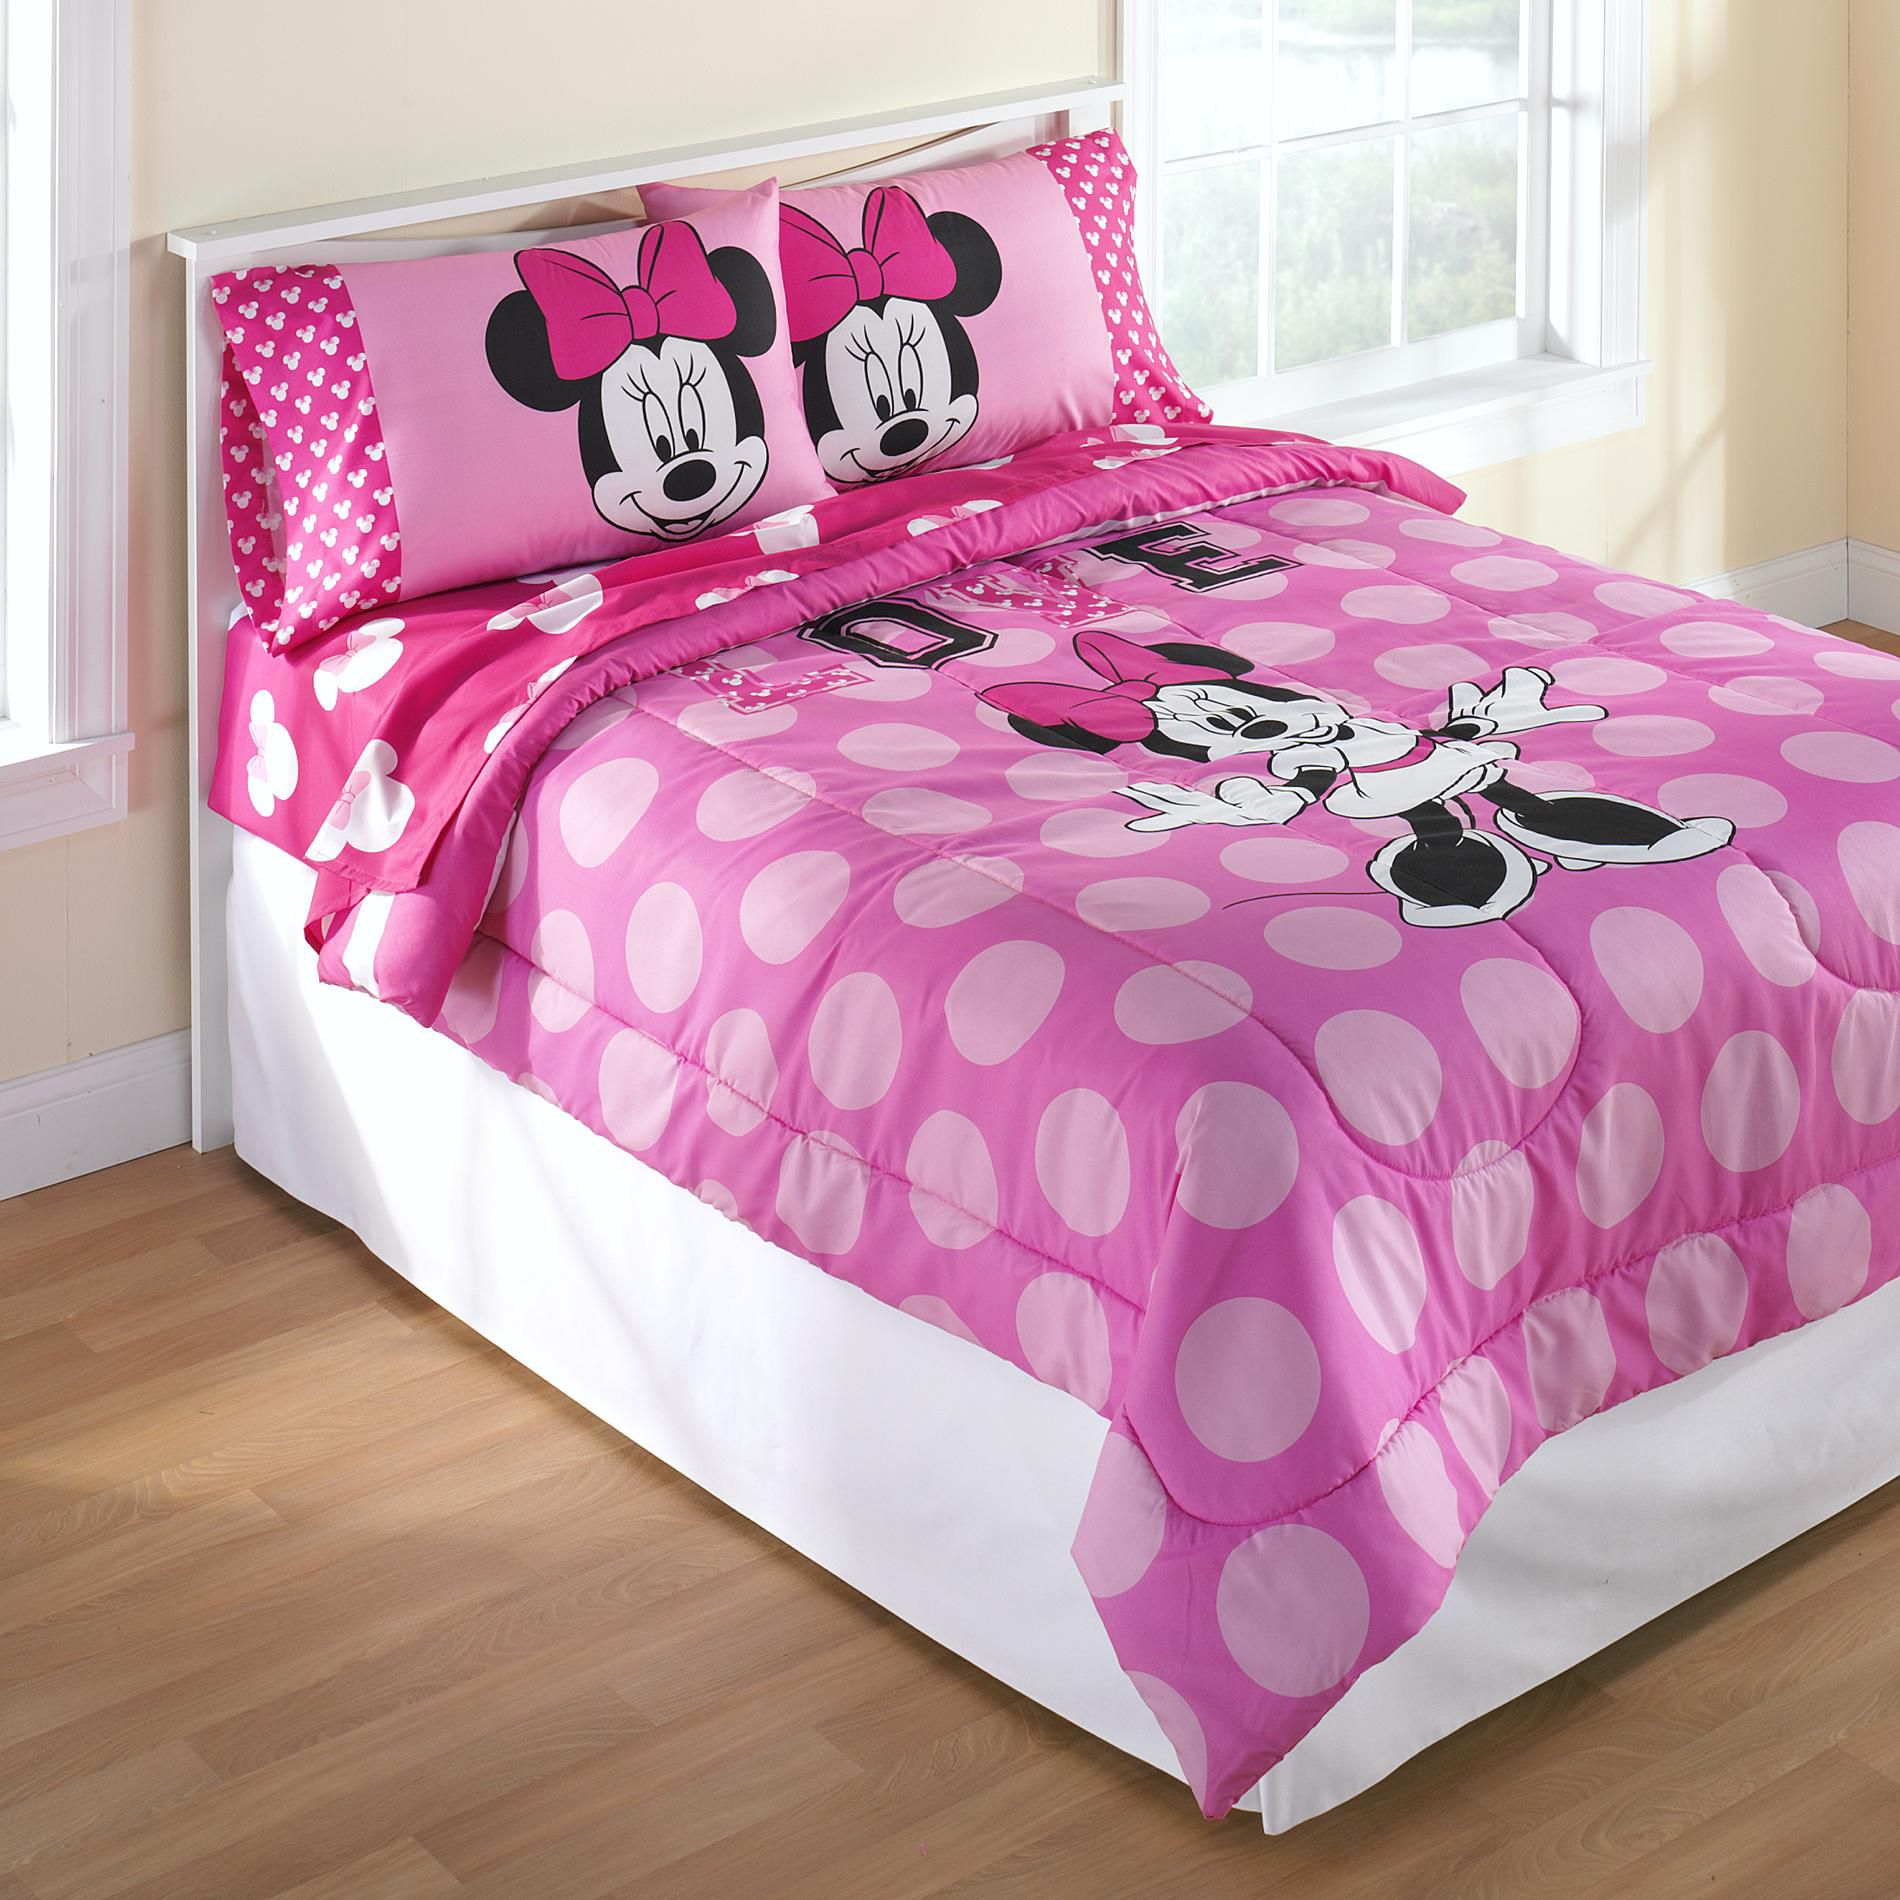 Minnie Mouse Bedding Set Full Size